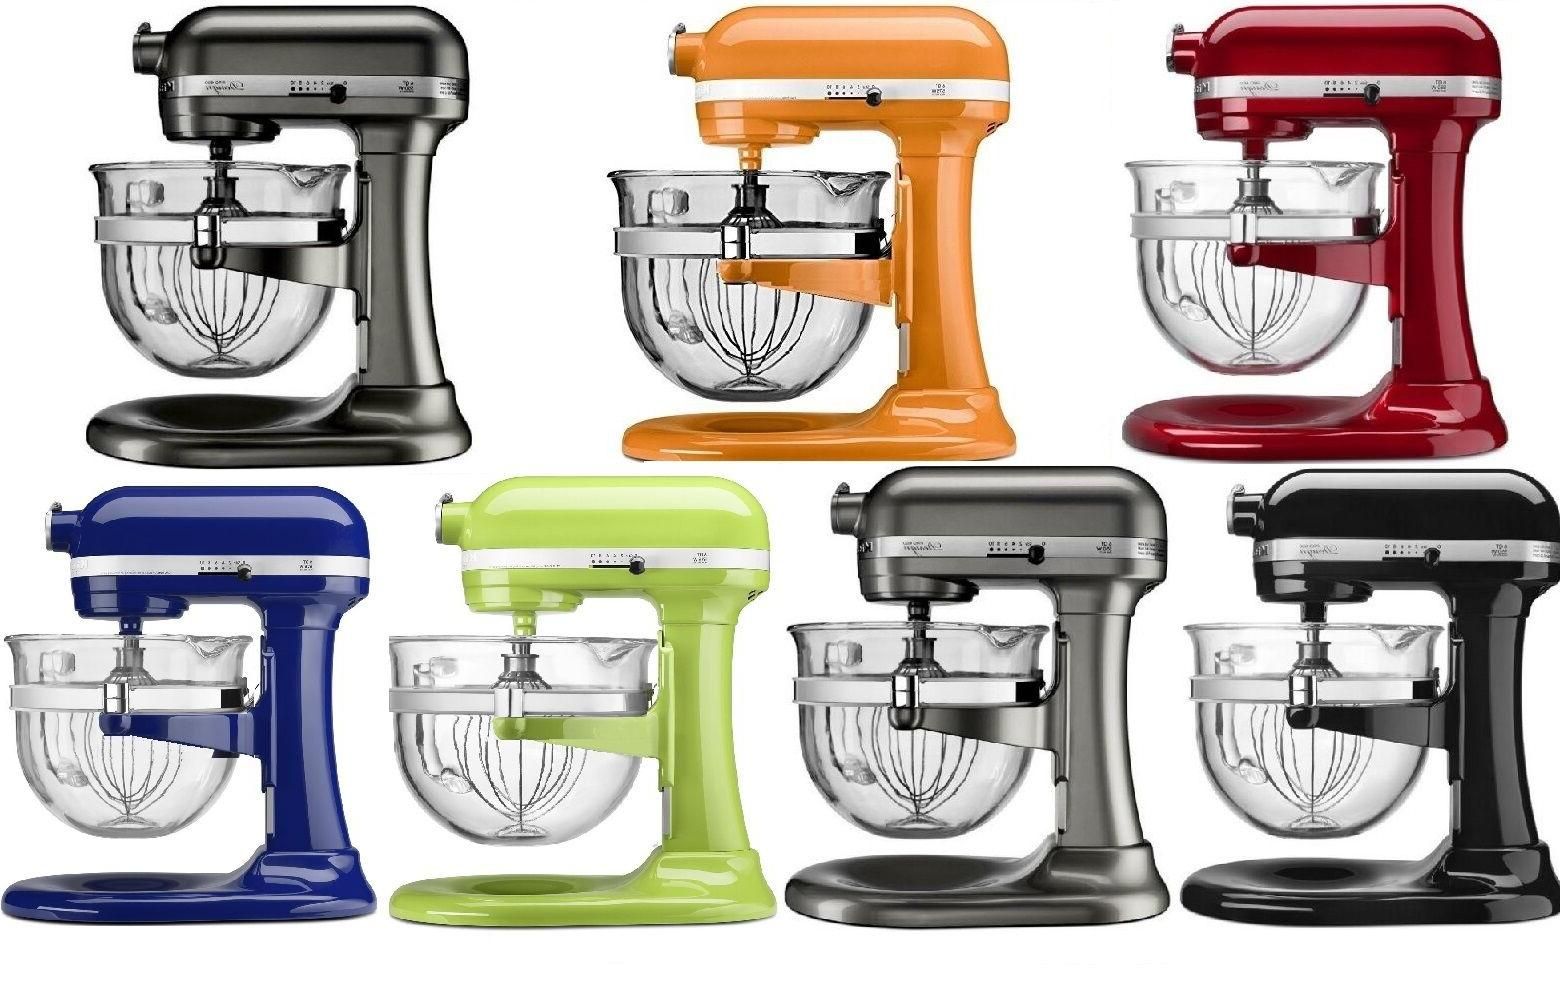 New KitchenAid Mixer With Glass Colors